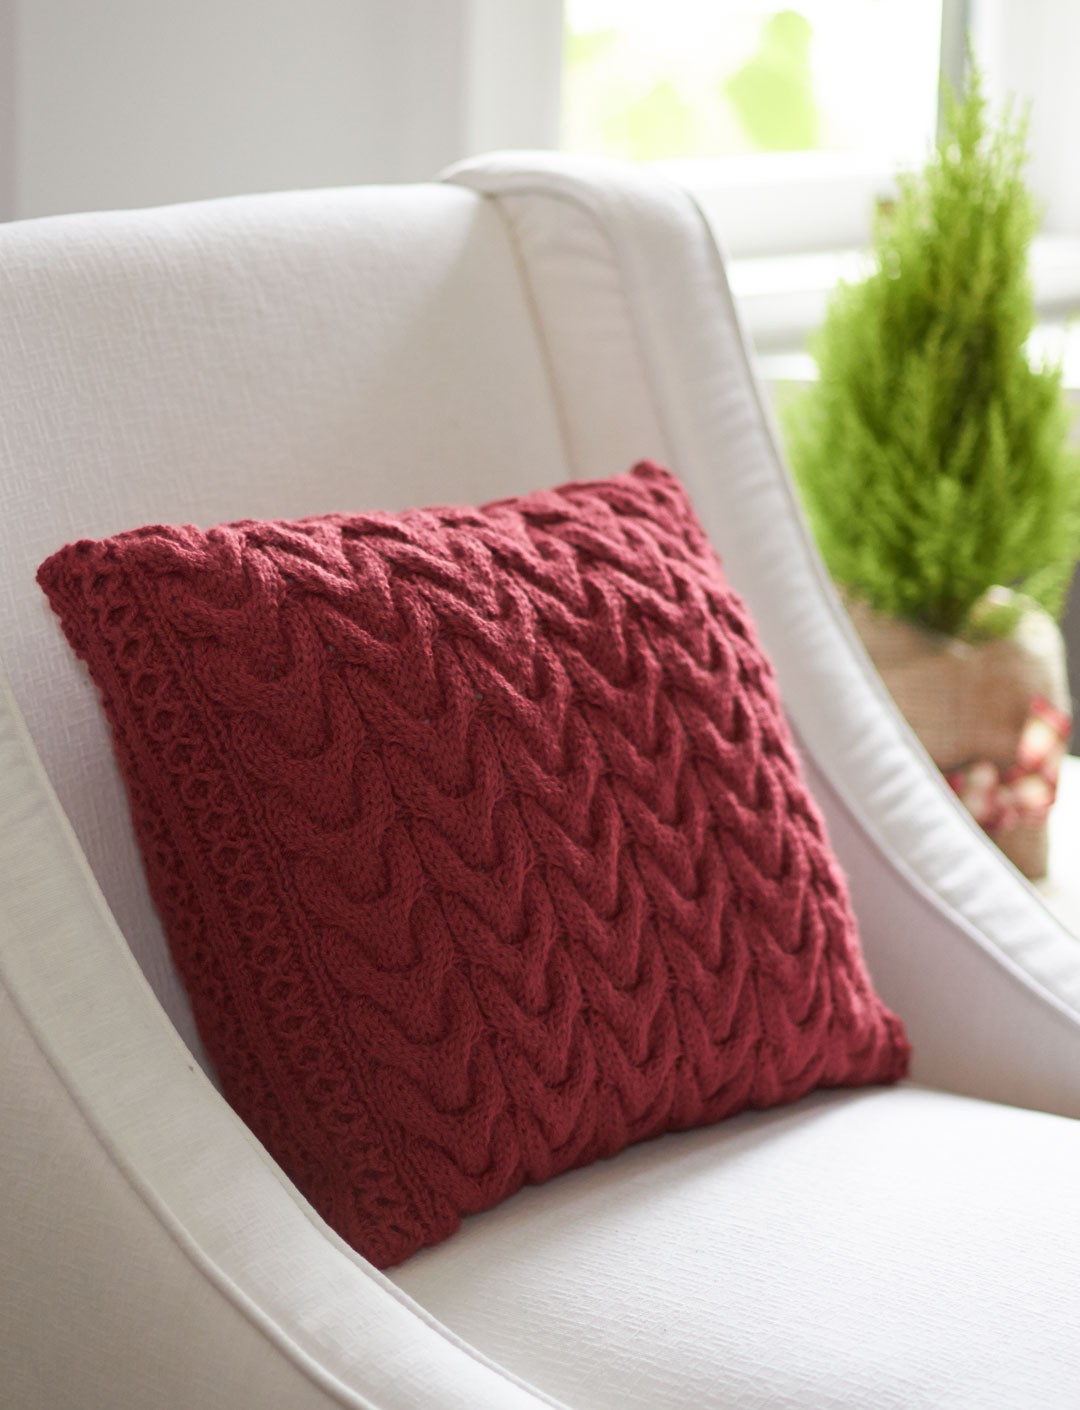 Knitting Pillow Pattern : Patons christmas cables pillow knit pattern yarnspirations